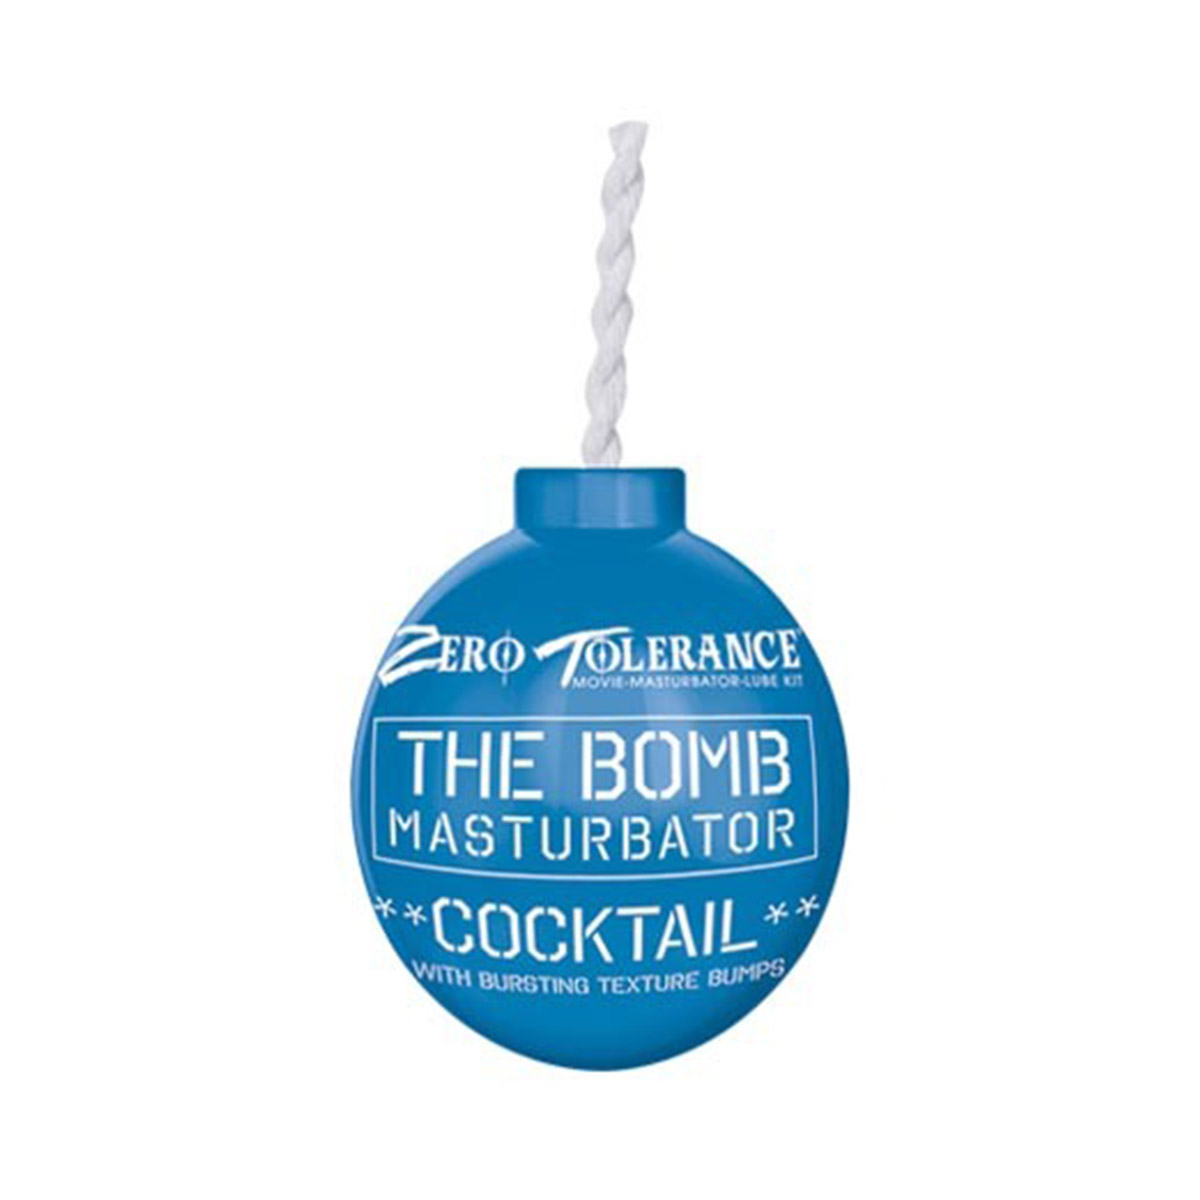 Bomb-Cocktail-mockbox.jpg